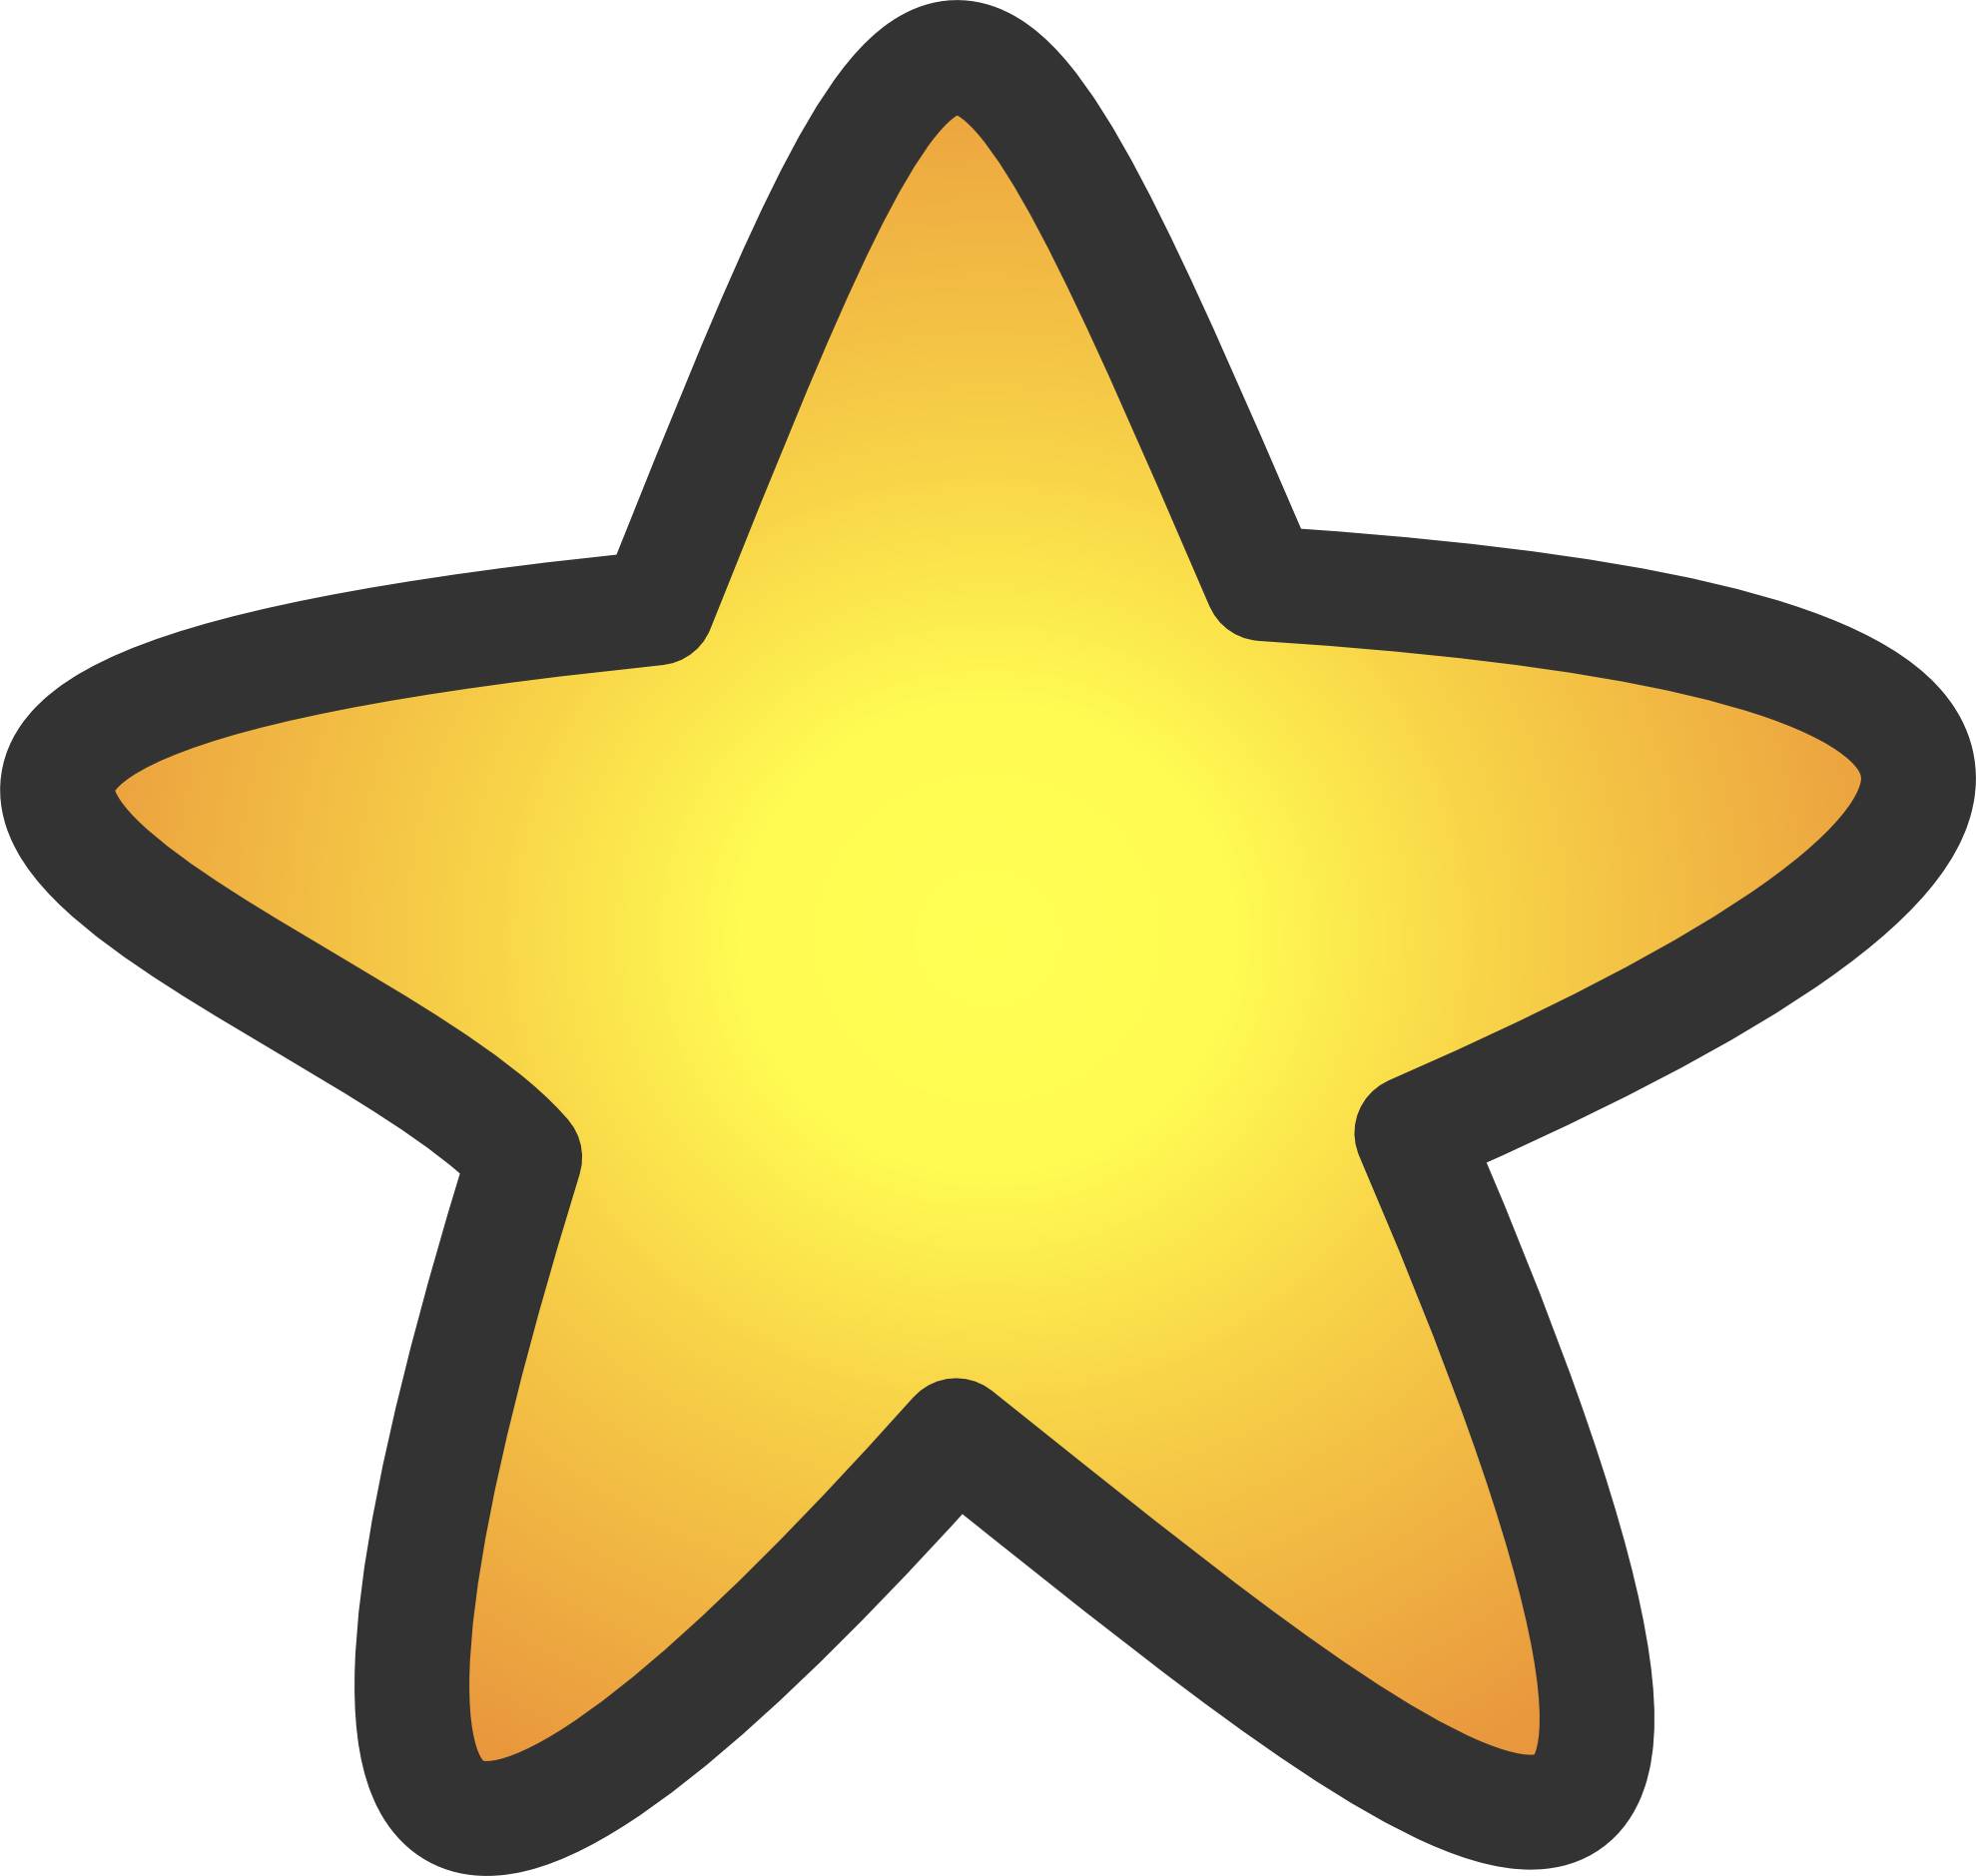 Free Image Of A Gold Star, Download Free Clip Art, Free Clip.